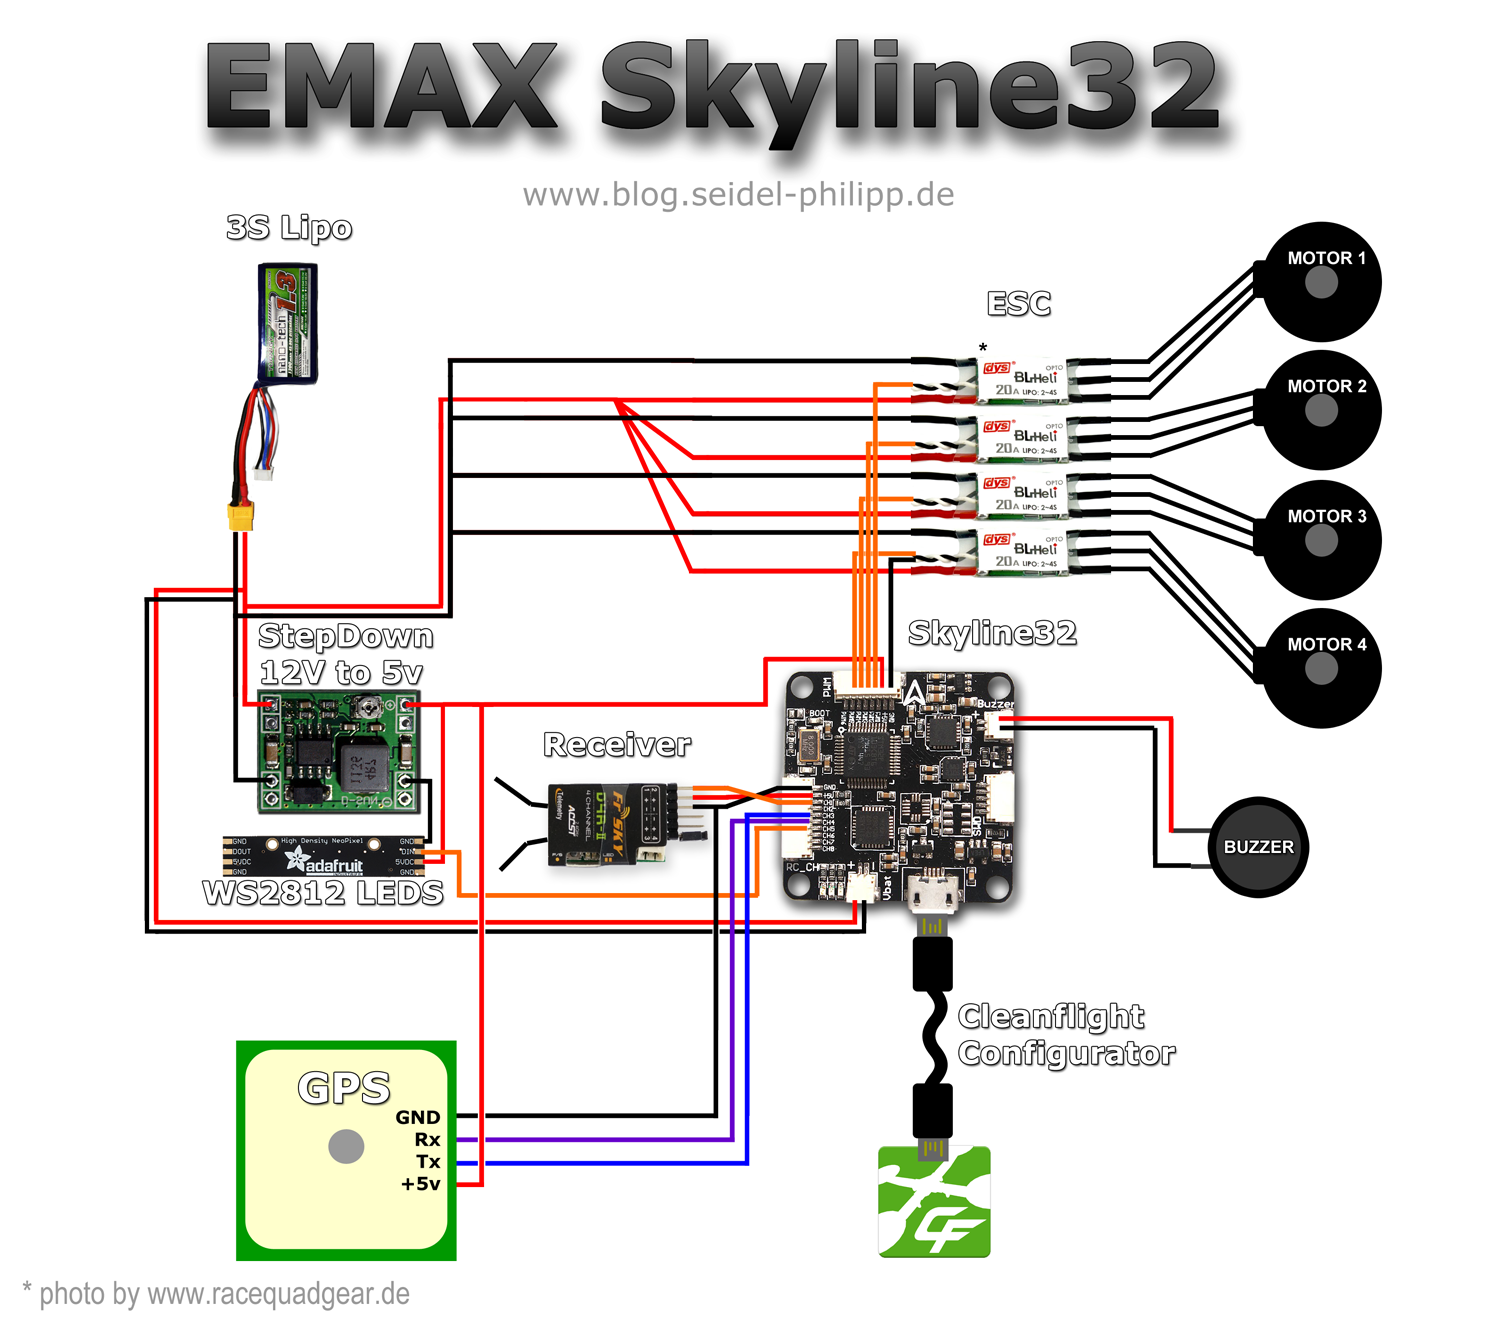 Skyline32 Naze32 Setup Wiring Guide To Motors And Esc Drone. Skyline32 Naze32 Setup Wiring Guide To Motors And Esc. Wiring. Drone Esc Wiring Diagram At Scoala.co